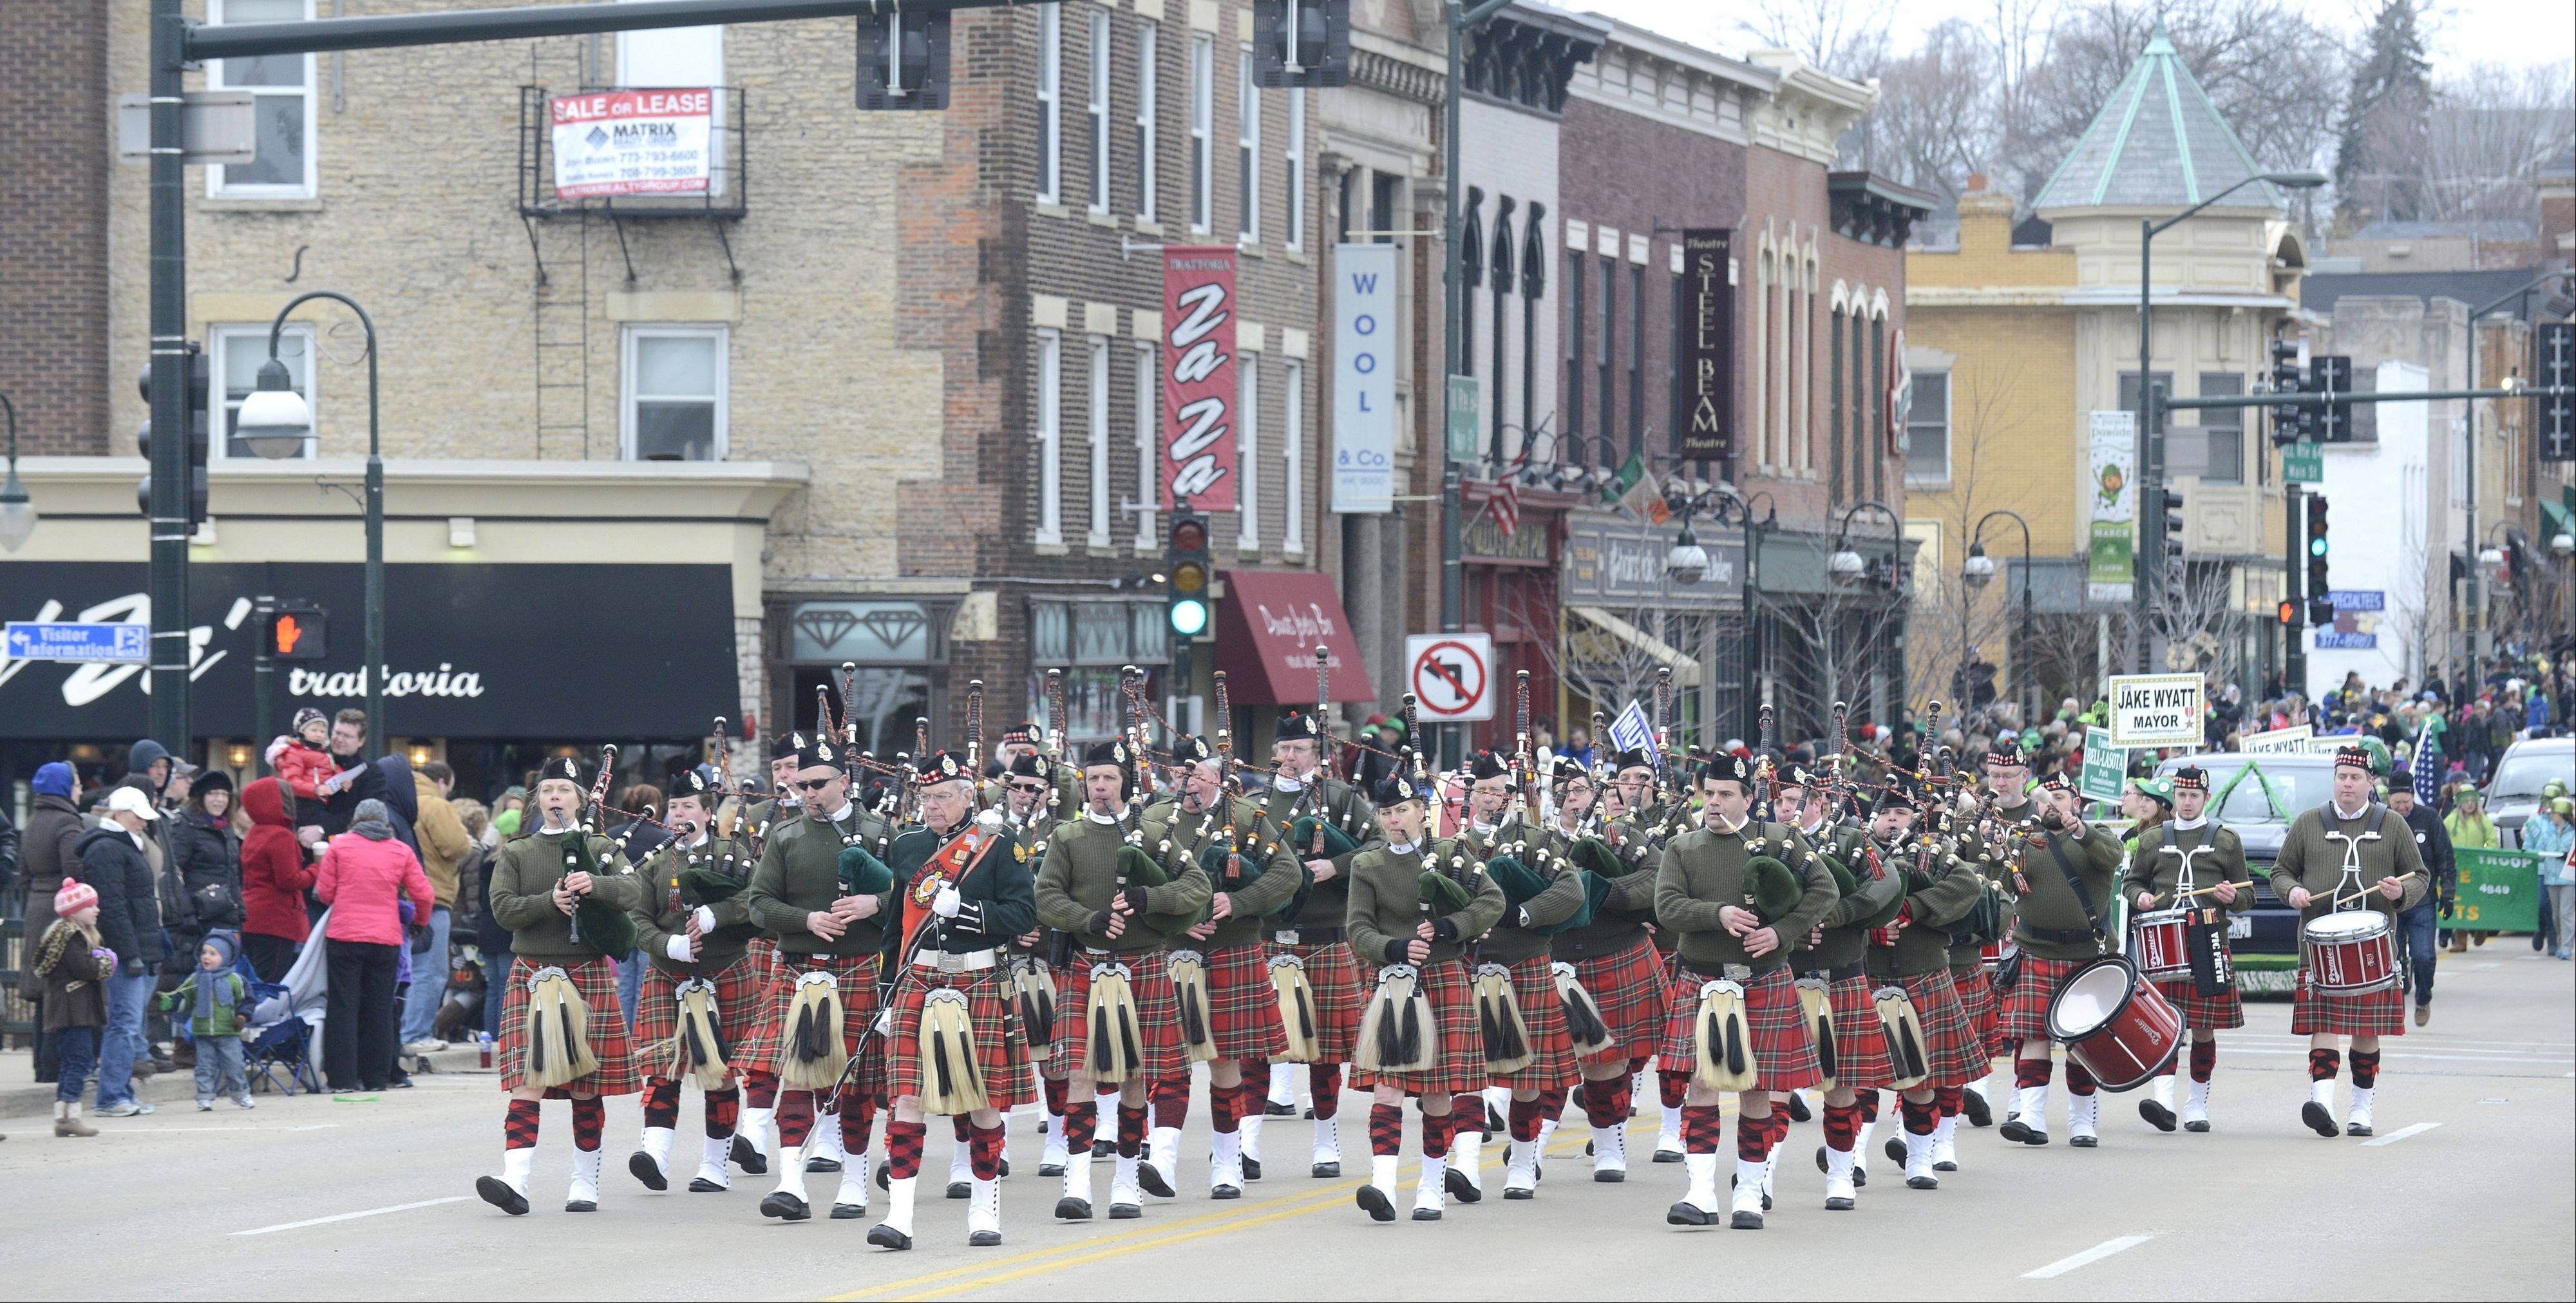 The Chicago Highlanders Pipes and Drums marches down Main Street in the St. Charles St. Patrick's Day parade on Saturday.